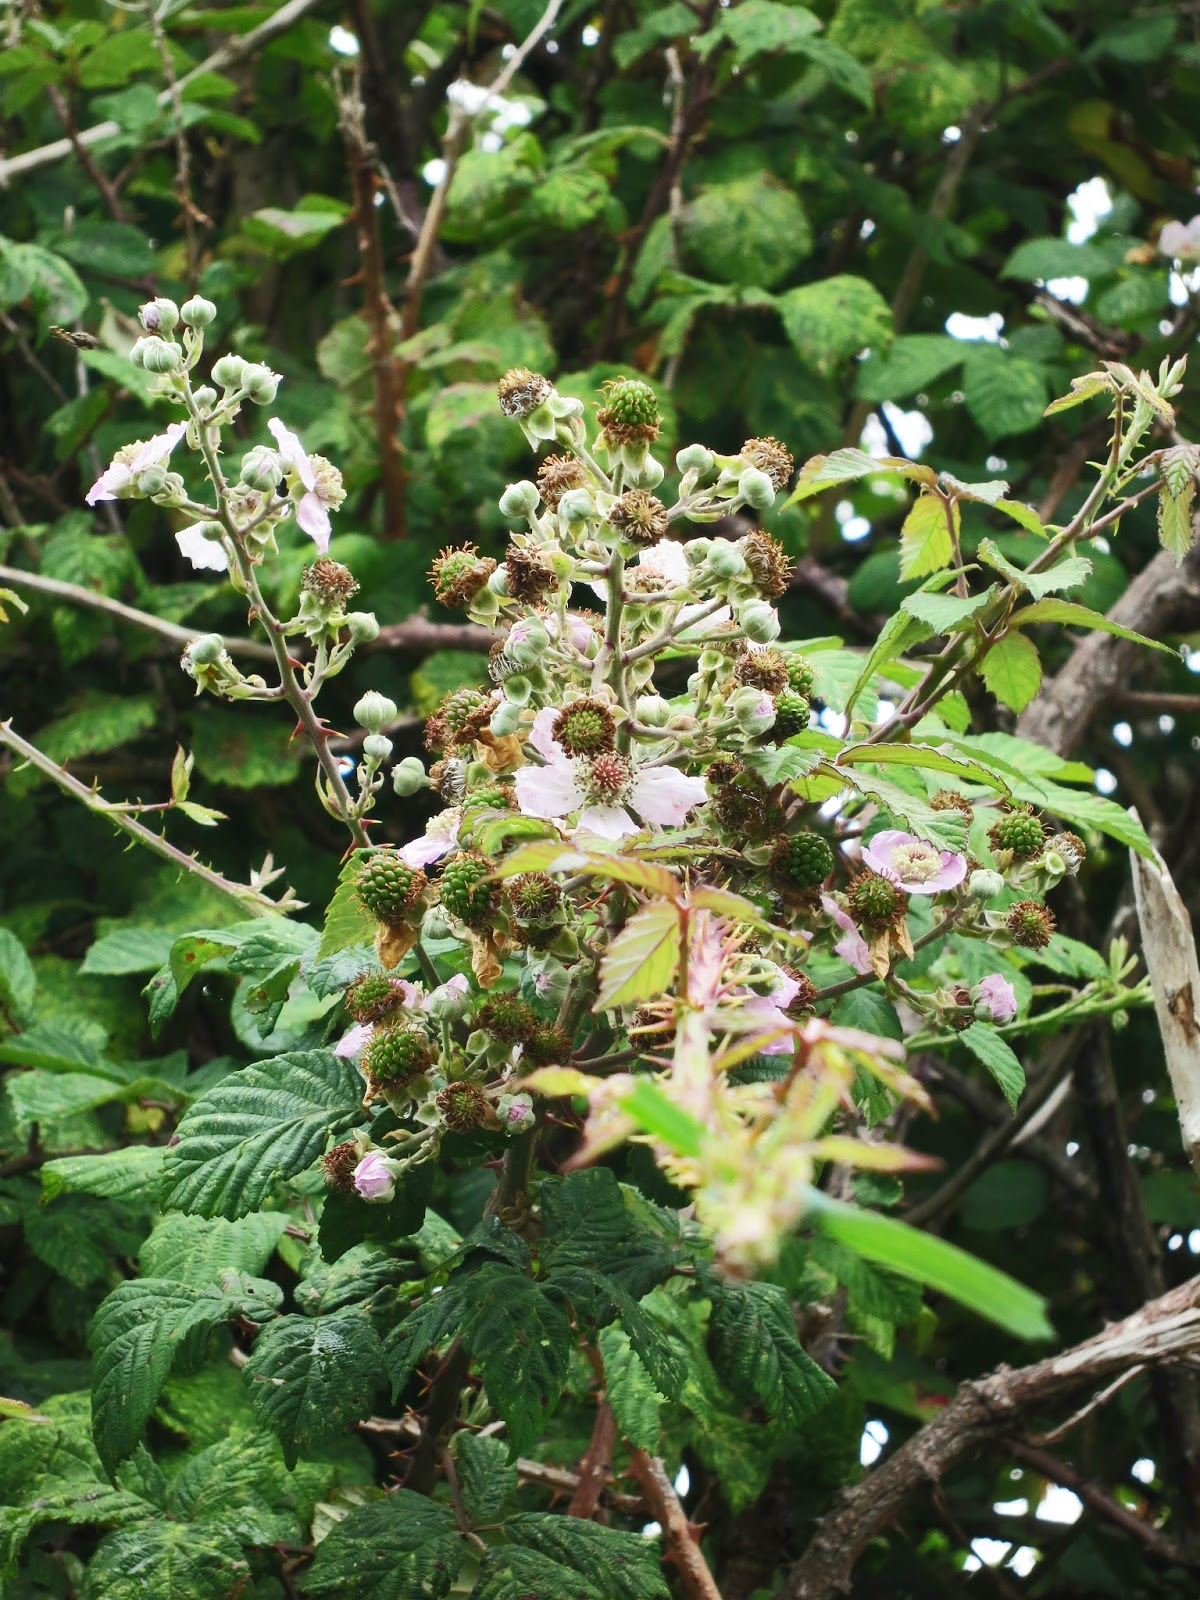 The bramble branch with flowers and small, unripe blackberries